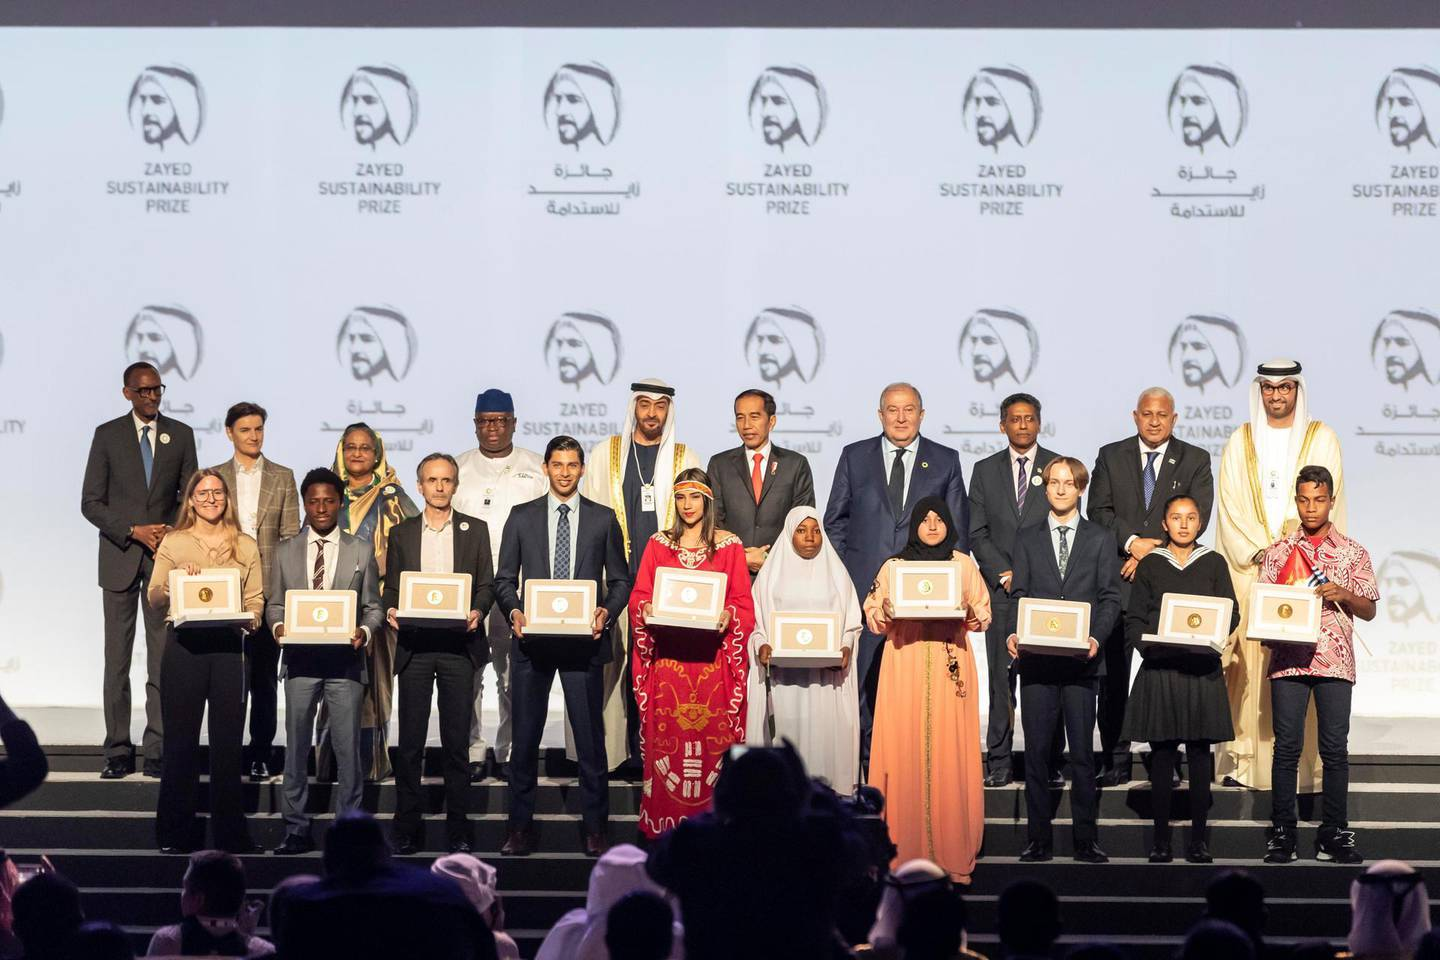 ABU DHABI, UNITED ARAB EMIRATES. 13 JANUARY 2020. The Zayed Sustainability Awards held at ADNEC as part of Abu Dhabi Sustainability Week. The winners from Top row center is H.E. Sheikh Mohammed bin Zayed Al Nahyan, Crown Prince of Abu Dhabi and Deputy Supreme Commander of the United Arab Emirates Armed Forces. LtoR in the bottom row: Health Winner: Globhe, Sweden. Food Winner: Okuafu Foundation, Ghana. Energy Winner: Electricians Without Borders, France. Water Winner: Ceres Imaging, USA. Global High Schools Winner: The Americas, Air Batalla, Columbia. Global High Schools Winner: Sub Sahara Africa, HakimiAliyu Day Secondary School, Nigeria. Global High Schools Winner: Middle East and North Africa, Al Amal Junior High School, Morocco. Global High Schools Winner: Europe and Central Asia, United World College Mostar, Bosnia and Herzegovina. Global High Schools Winner: South Asia, Bloom Nepal School, Nepal. Global High Schools Winner: East Asia and Pacific, Eutan Tarawa IETA Junior Secondary School, Kiribati. (Photo: Antonie Robertson/The National) Journalist: Kelly Clarker. Section: National.